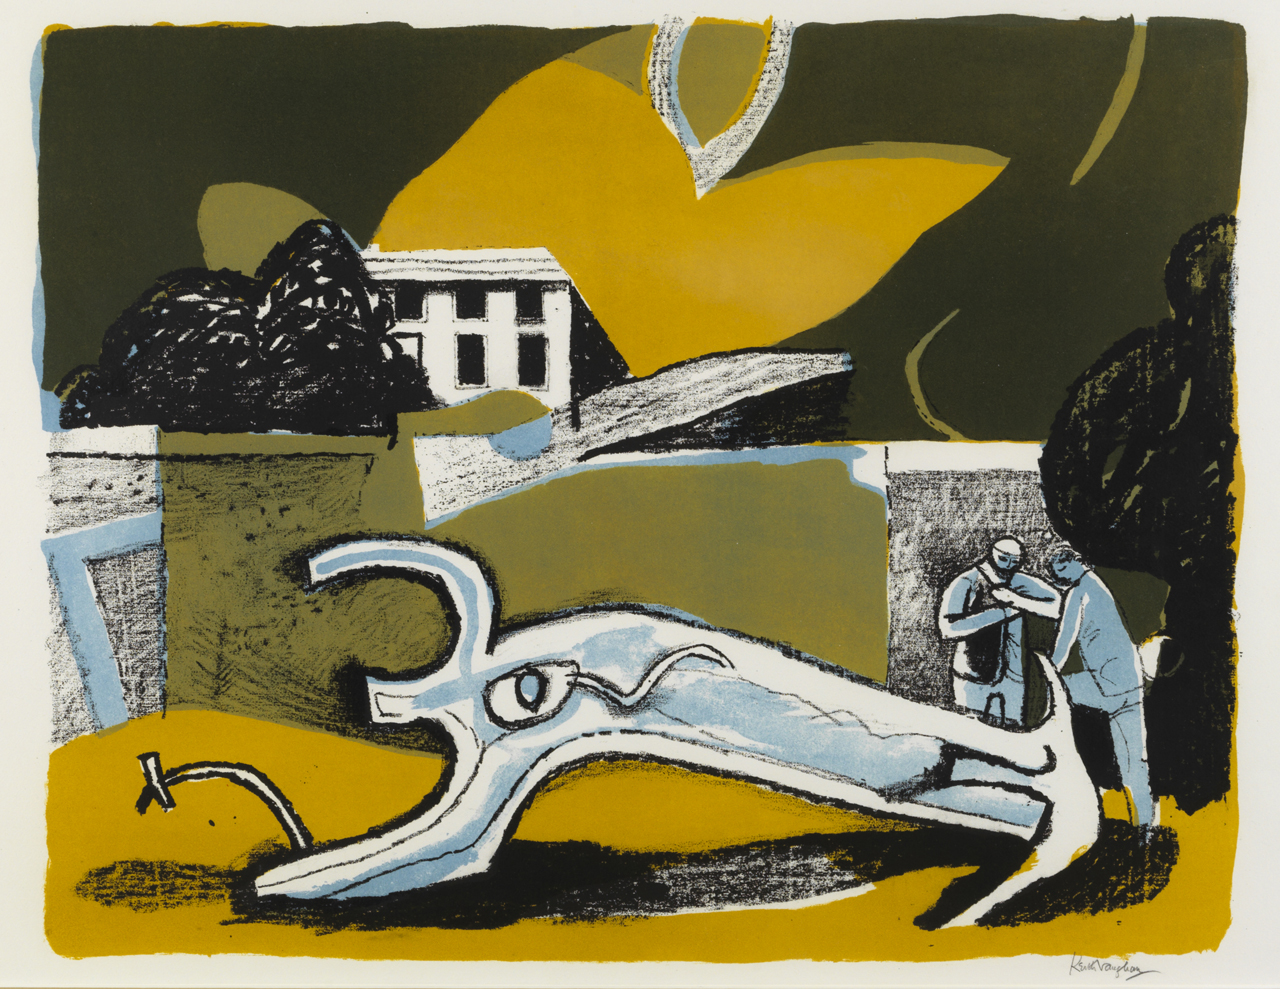 Work of the Week 29: The Walled Garden by Keith Vaughan